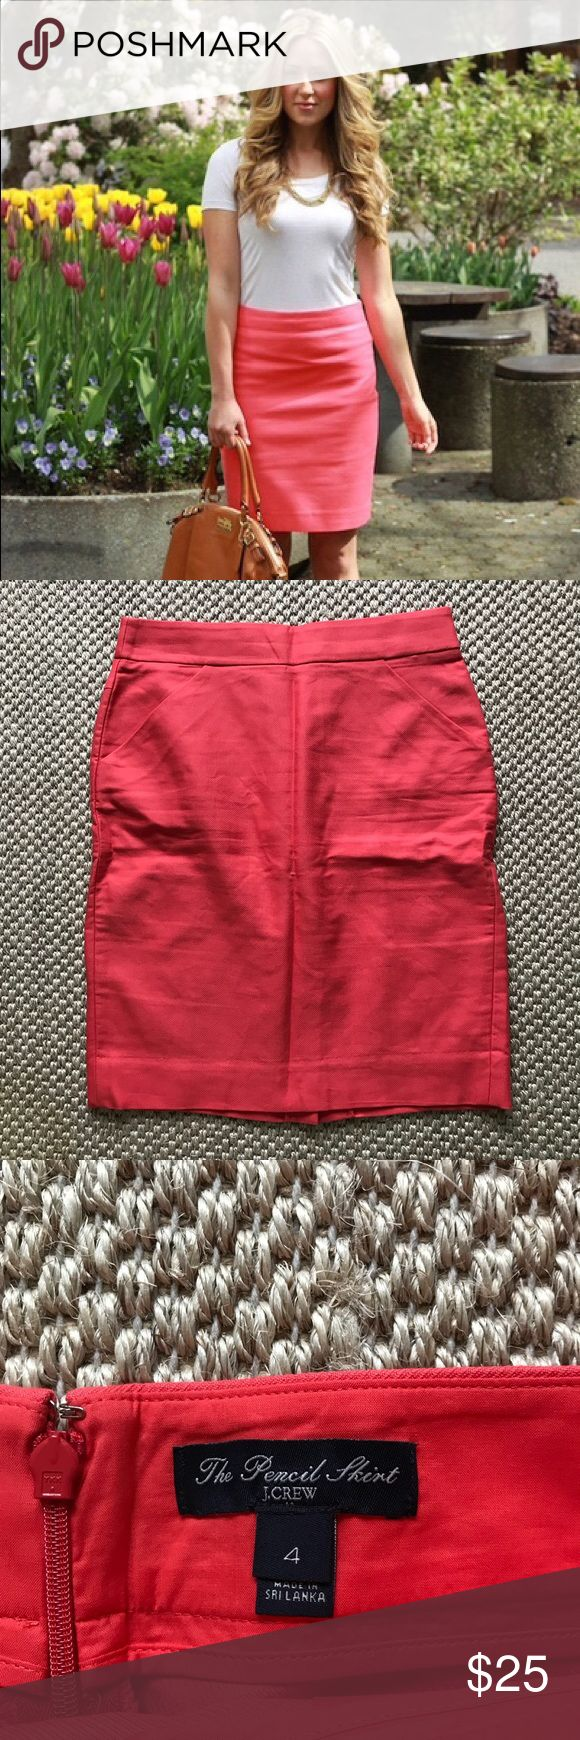 J. Crew coral pencil skirt J. Crew coral pencil skirt. Size 4 J. Crew Skirts Pencil